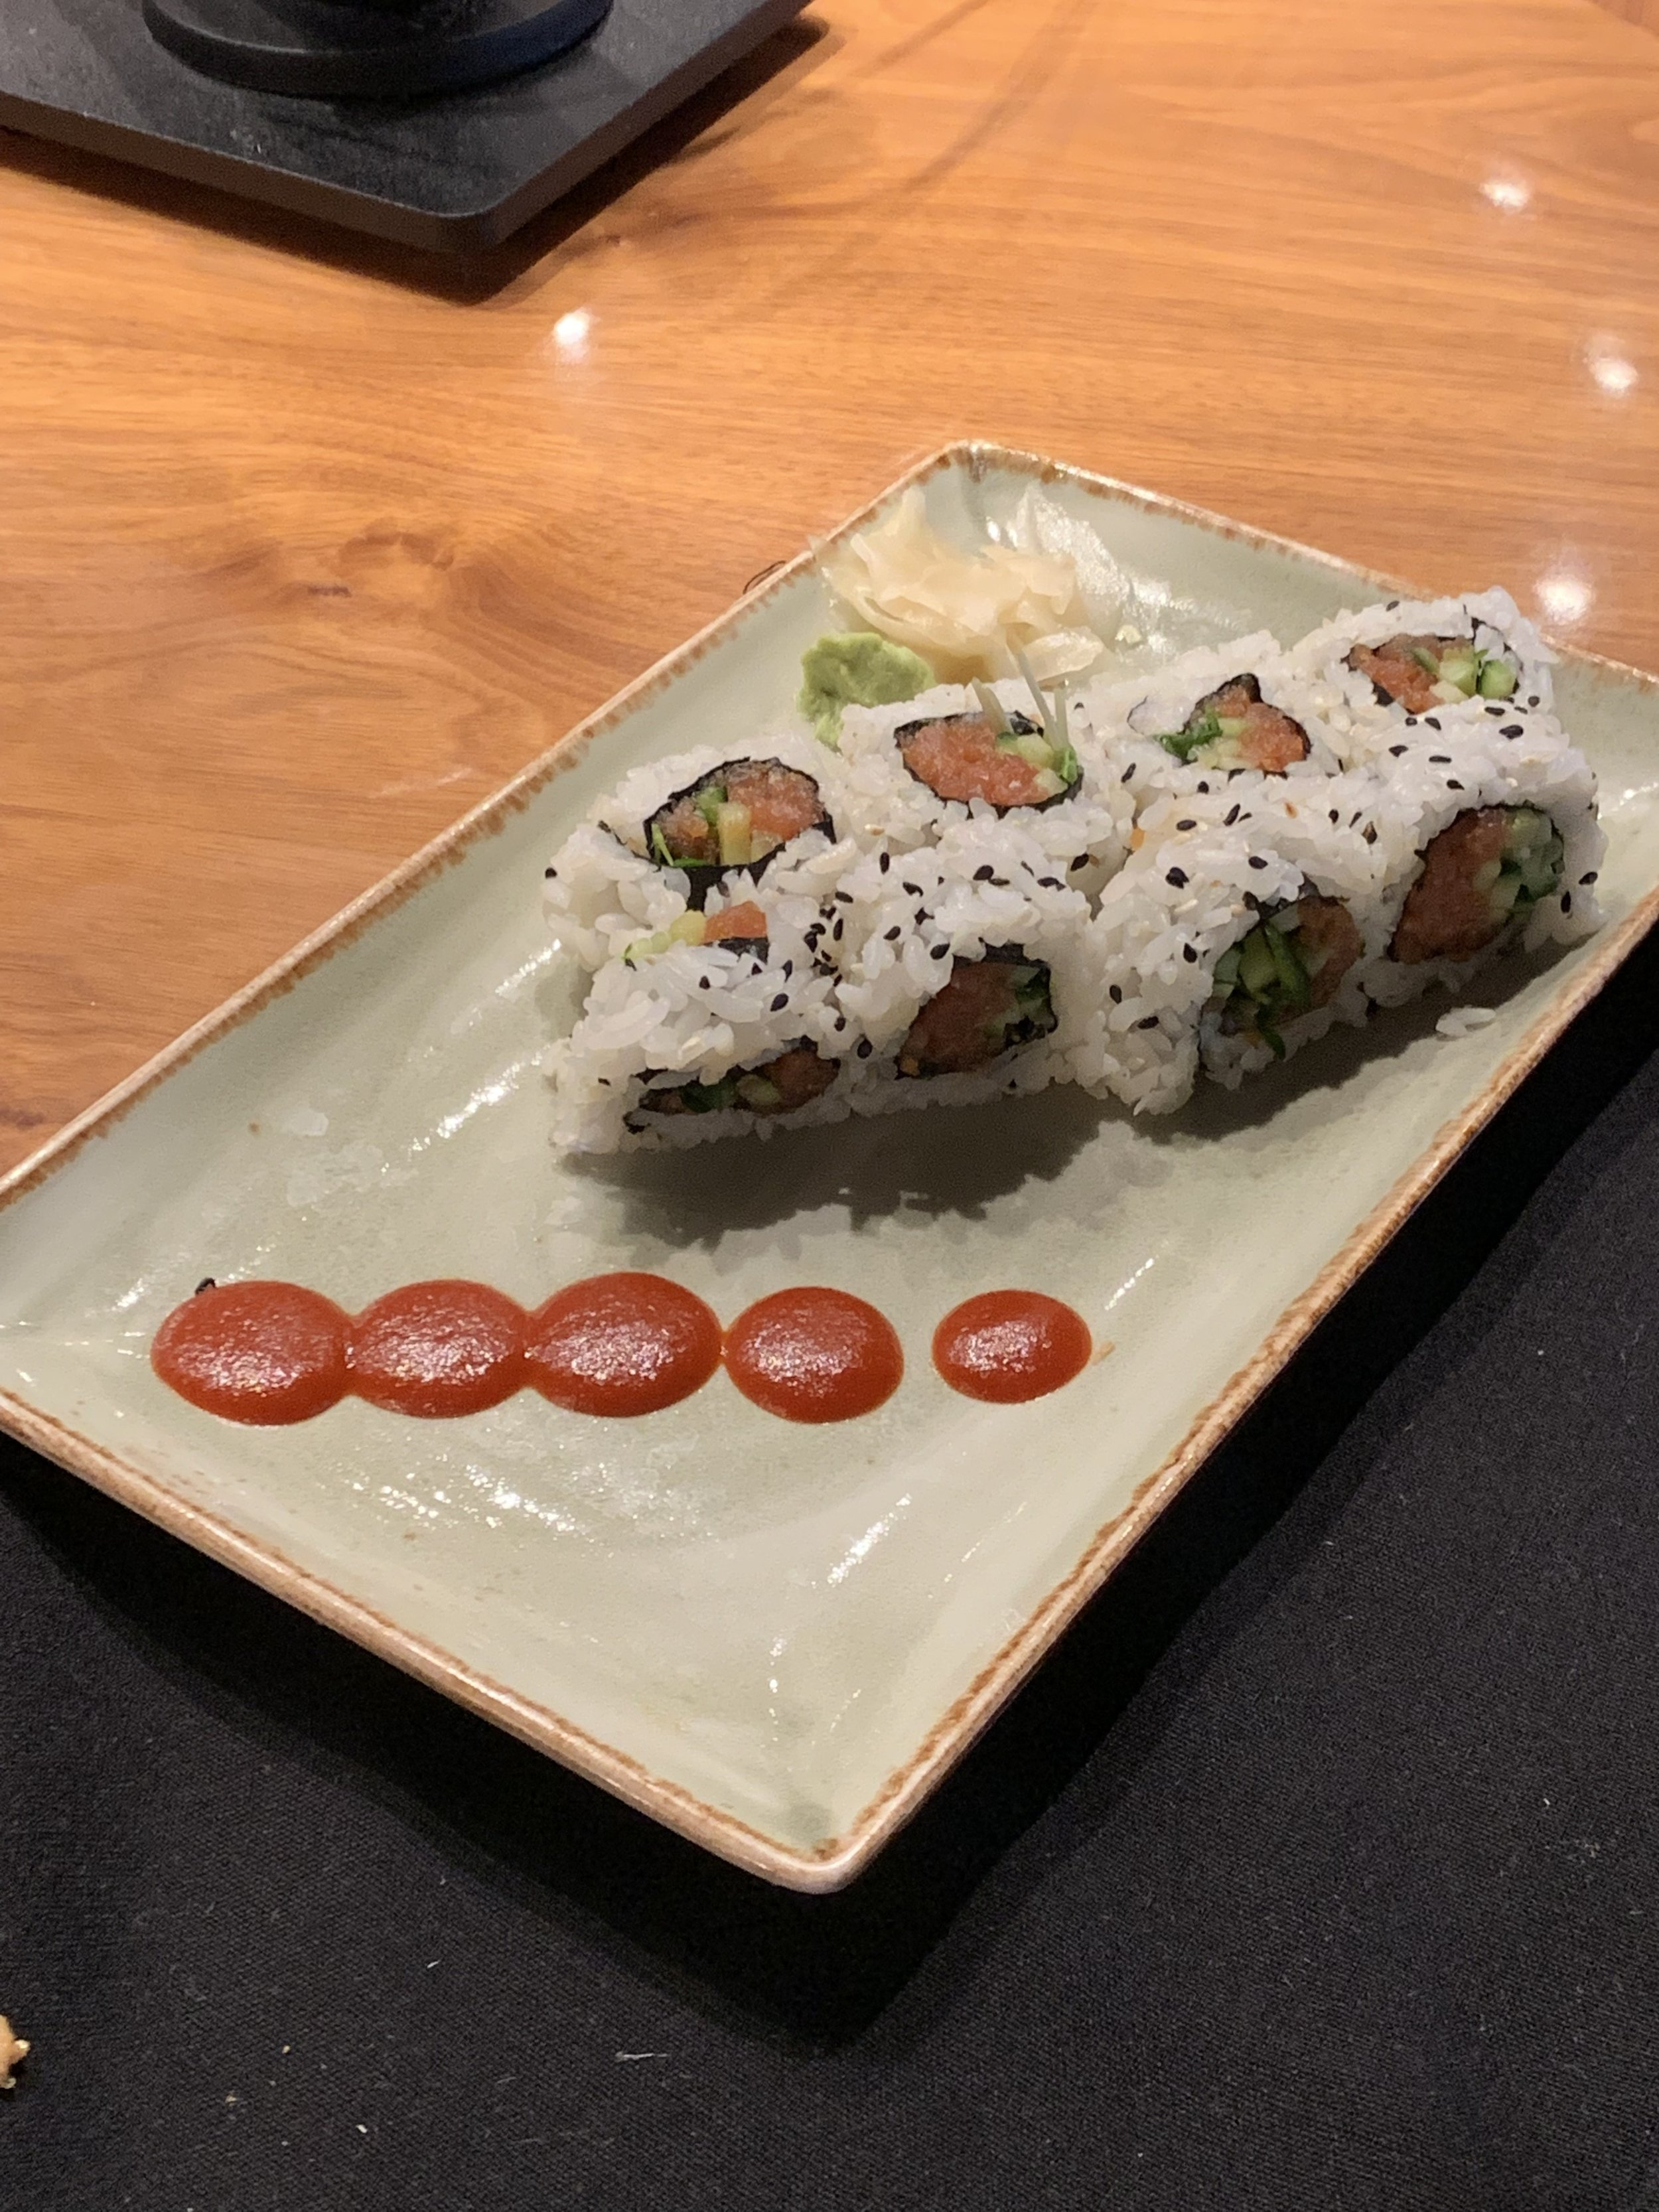 Very mediocre sushi